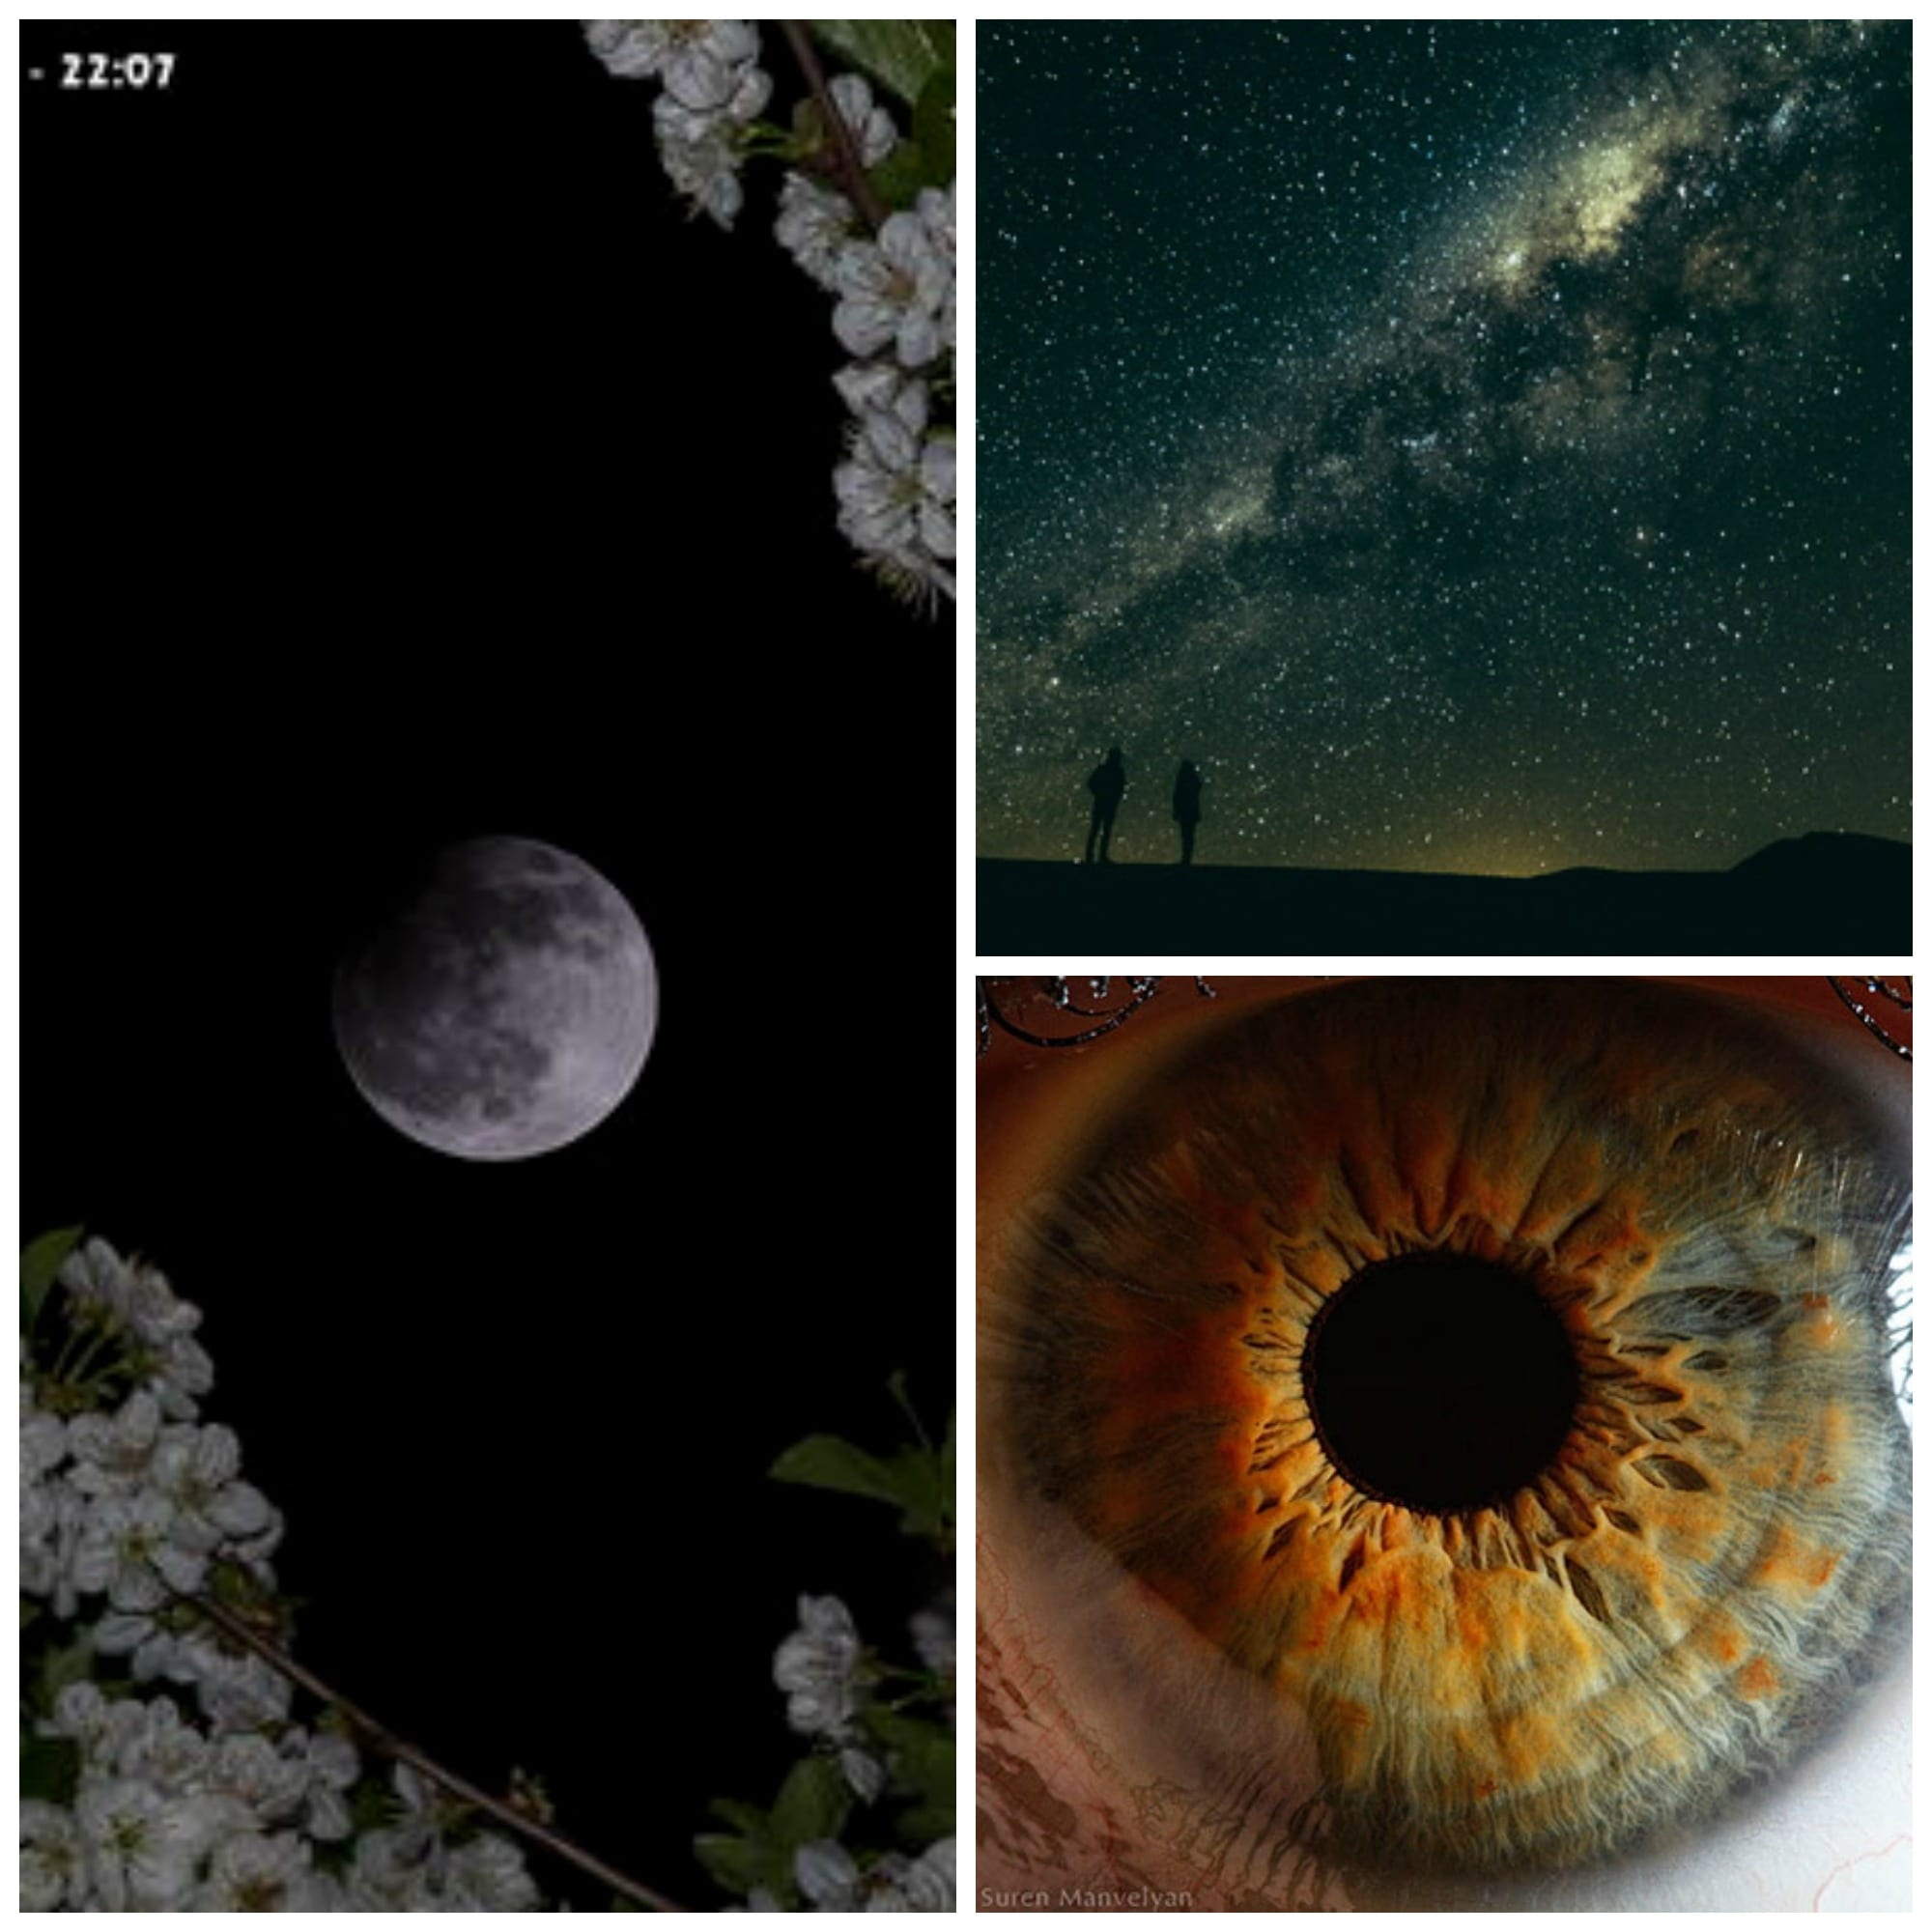 Night+Sky+And+An+Eye.jpgNight+Sky+And+An+Eye